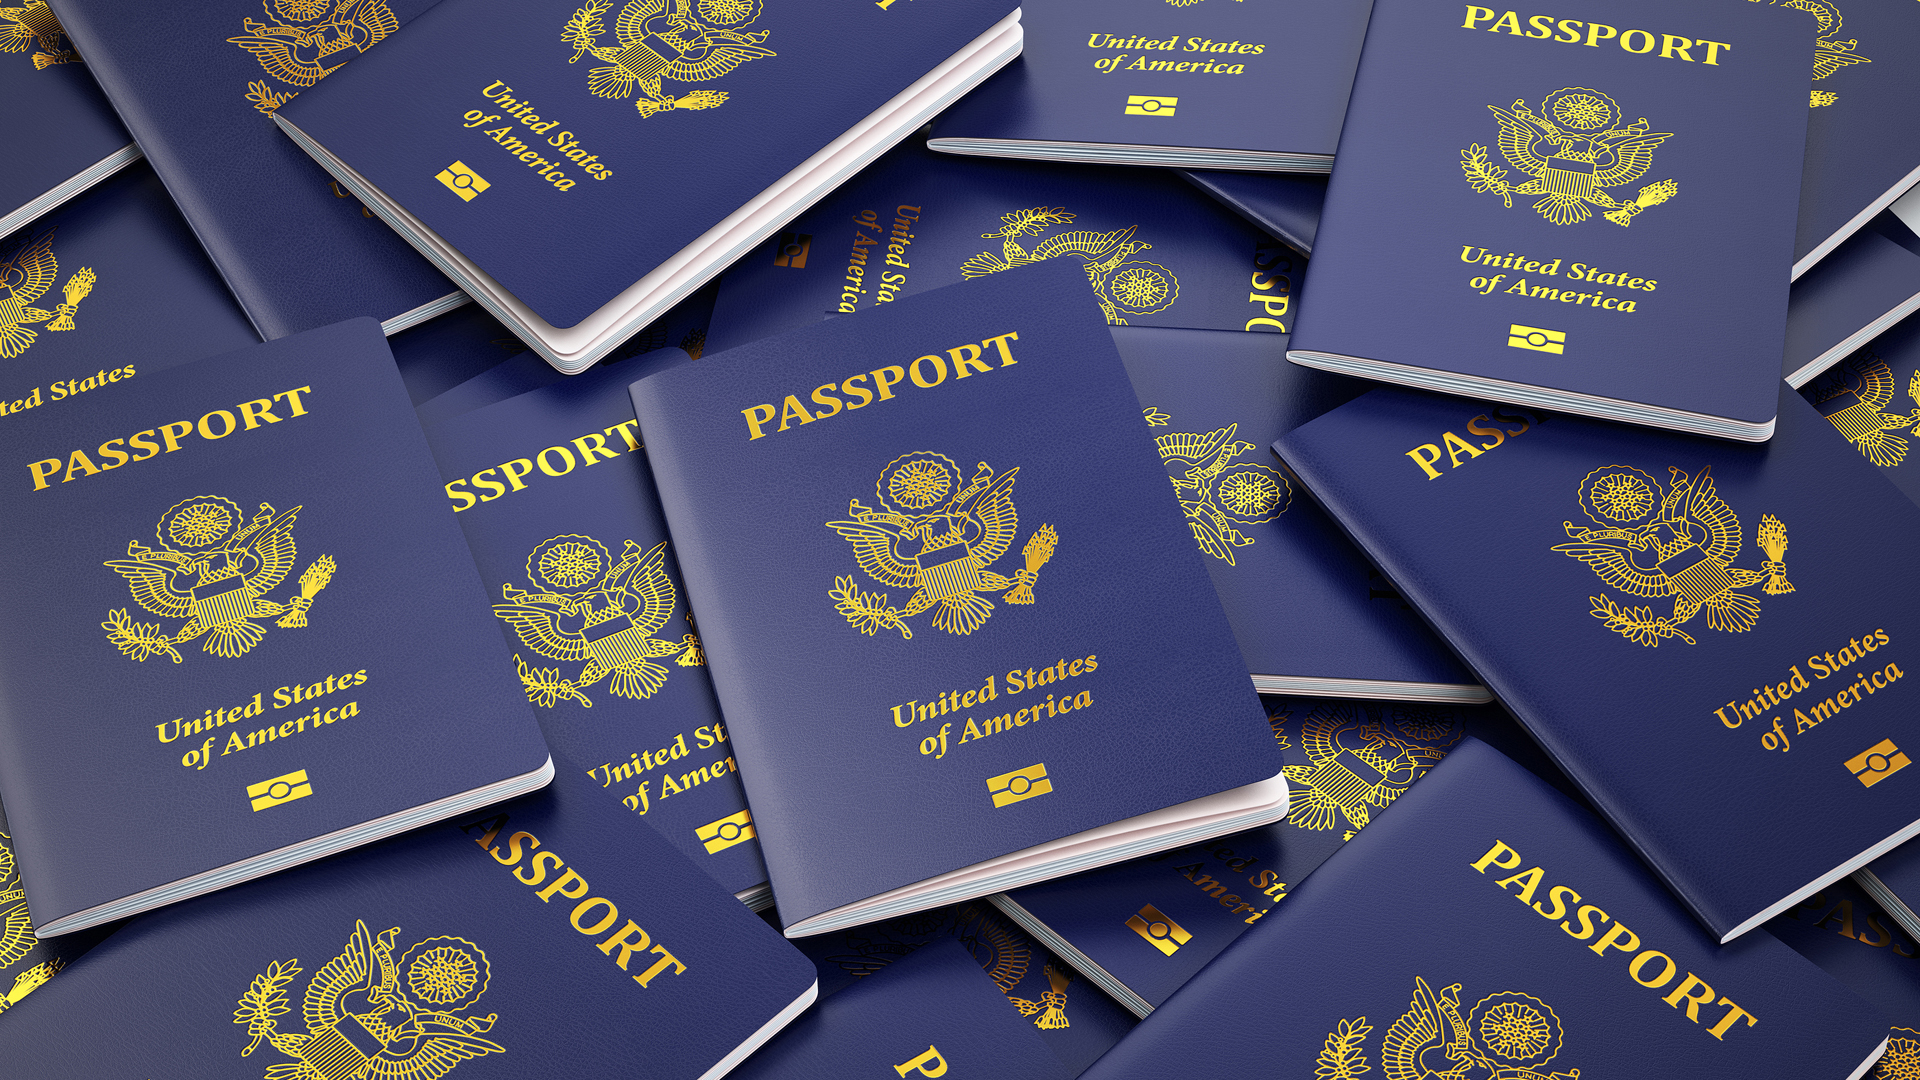 USA passport background. Immigration or travel concept. 3d illus_1526046642177